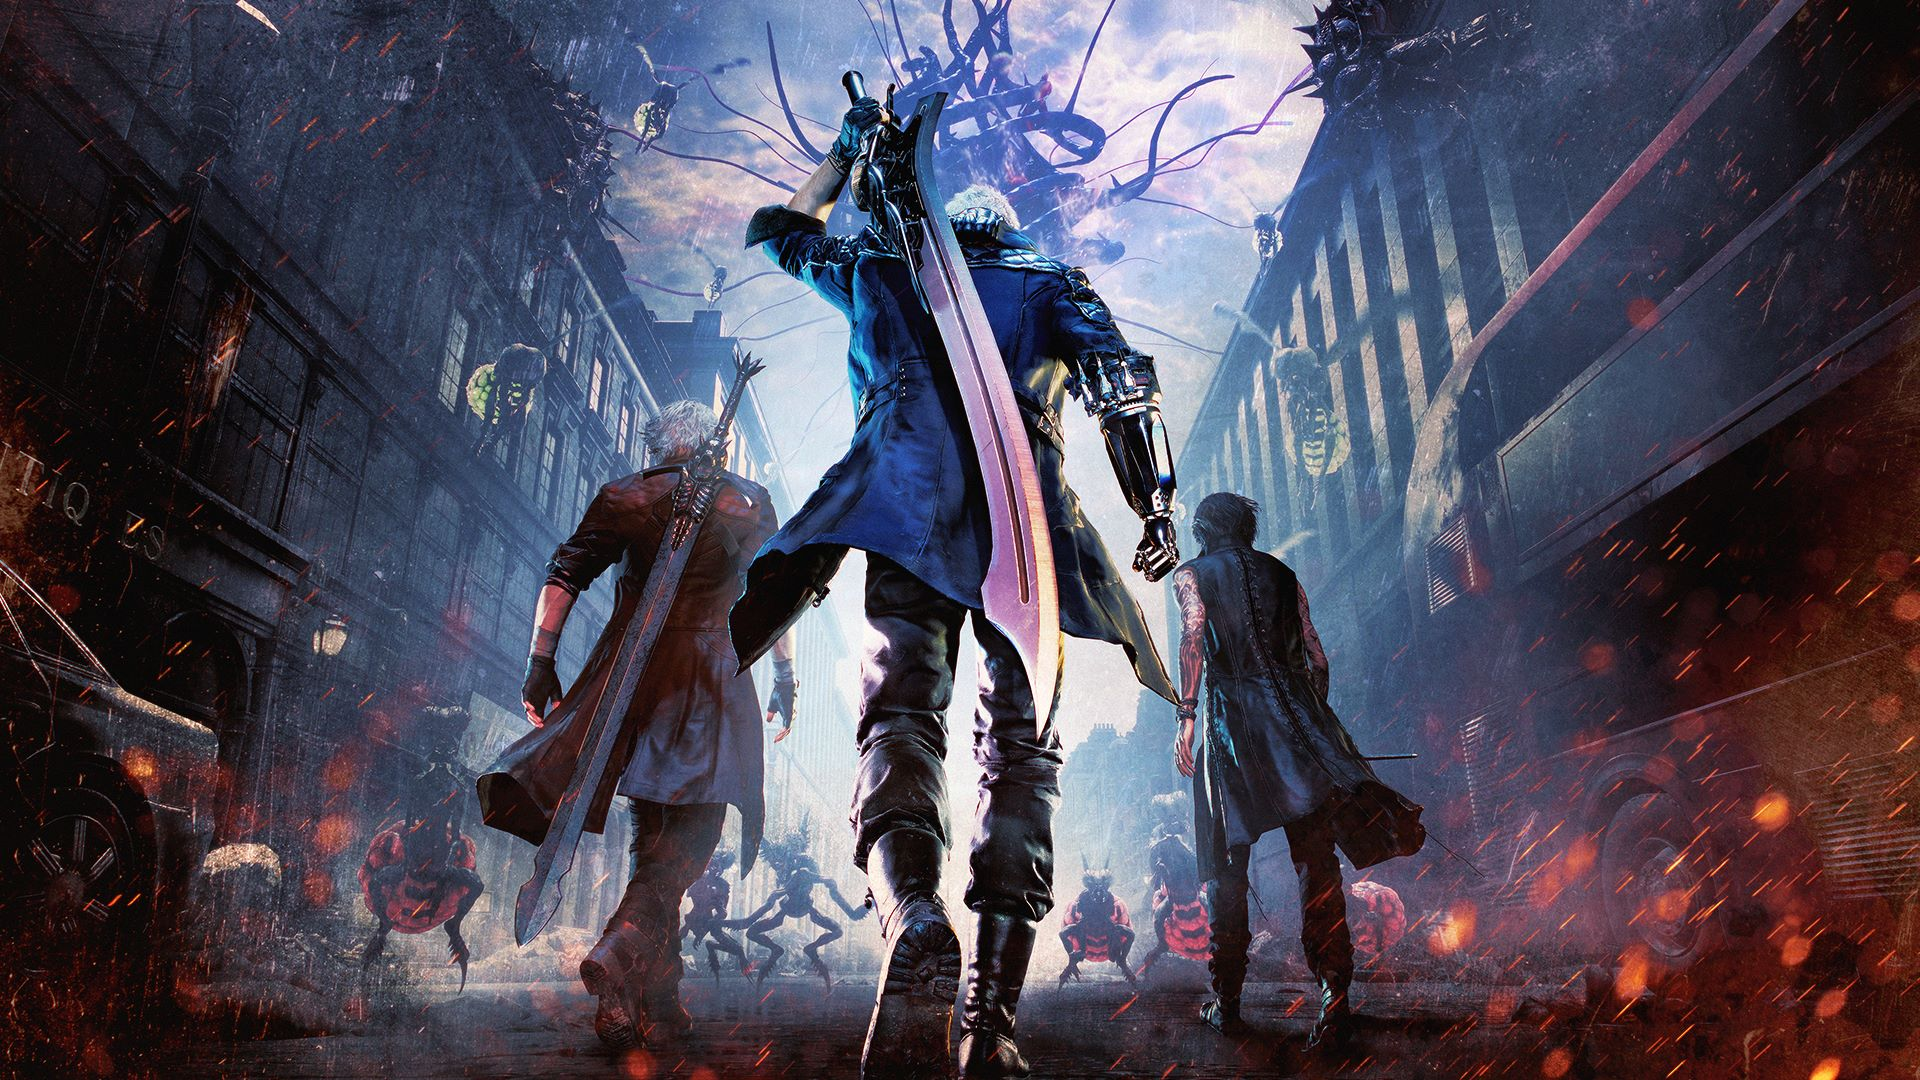 Devil May Cry 5 shipped 2m units in two weeks